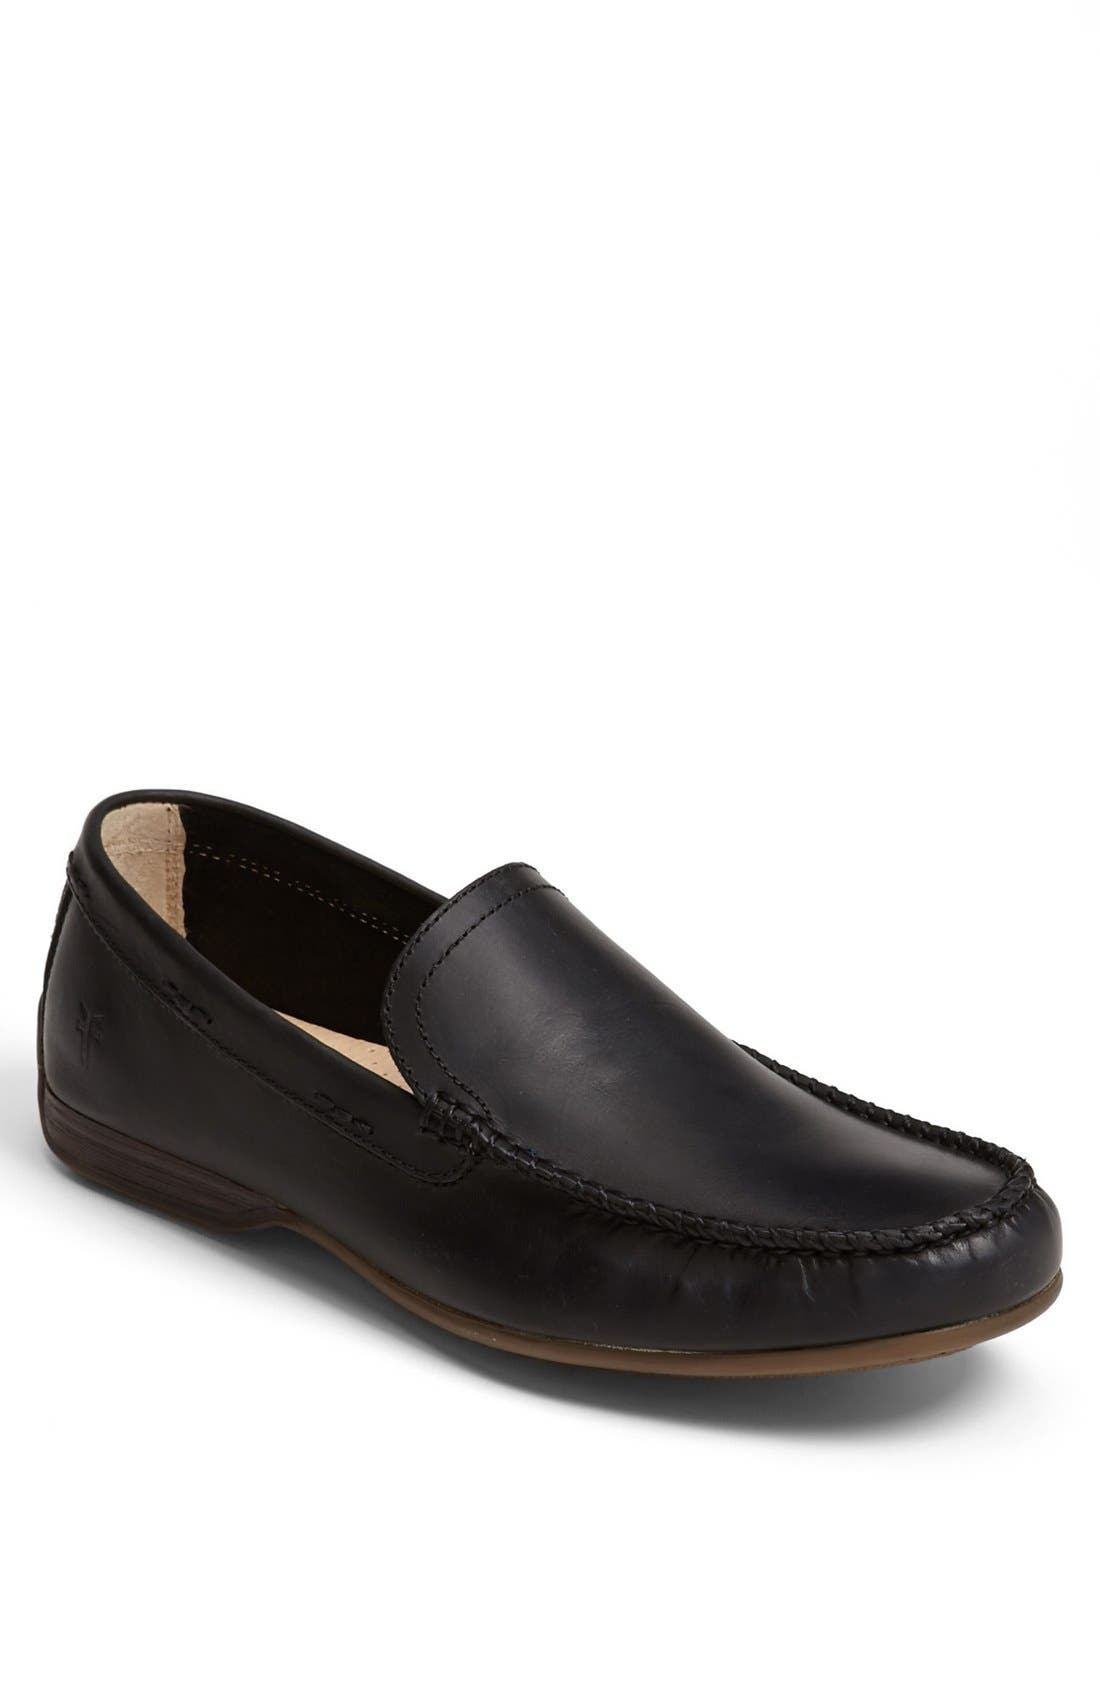 'Lewis' Venetian Loafer,                         Main,                         color, BLACK